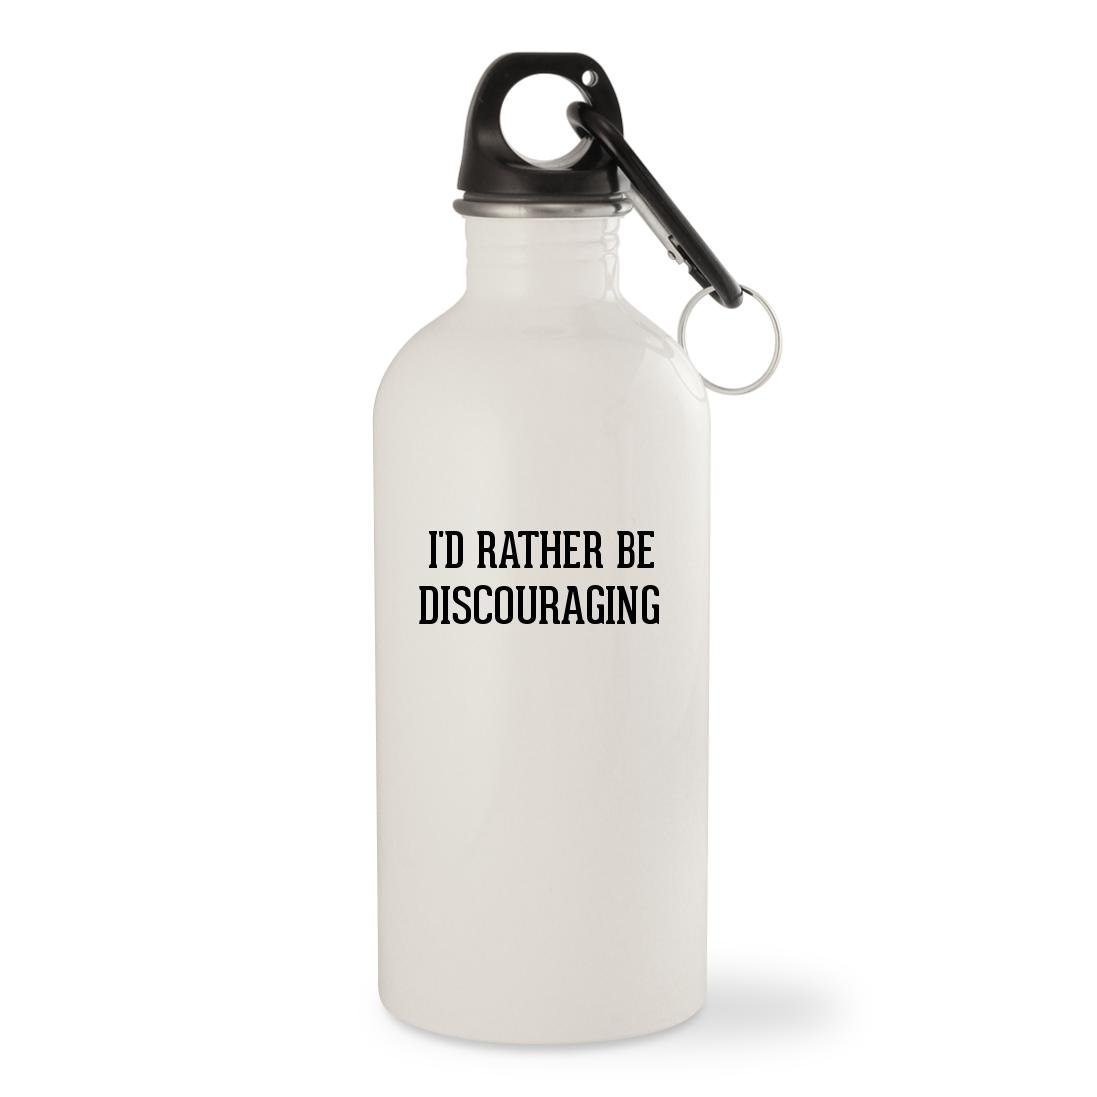 I'd Rather Be DISCOURAGING - White 20oz Stainless Steel Water Bottle with Carabiner